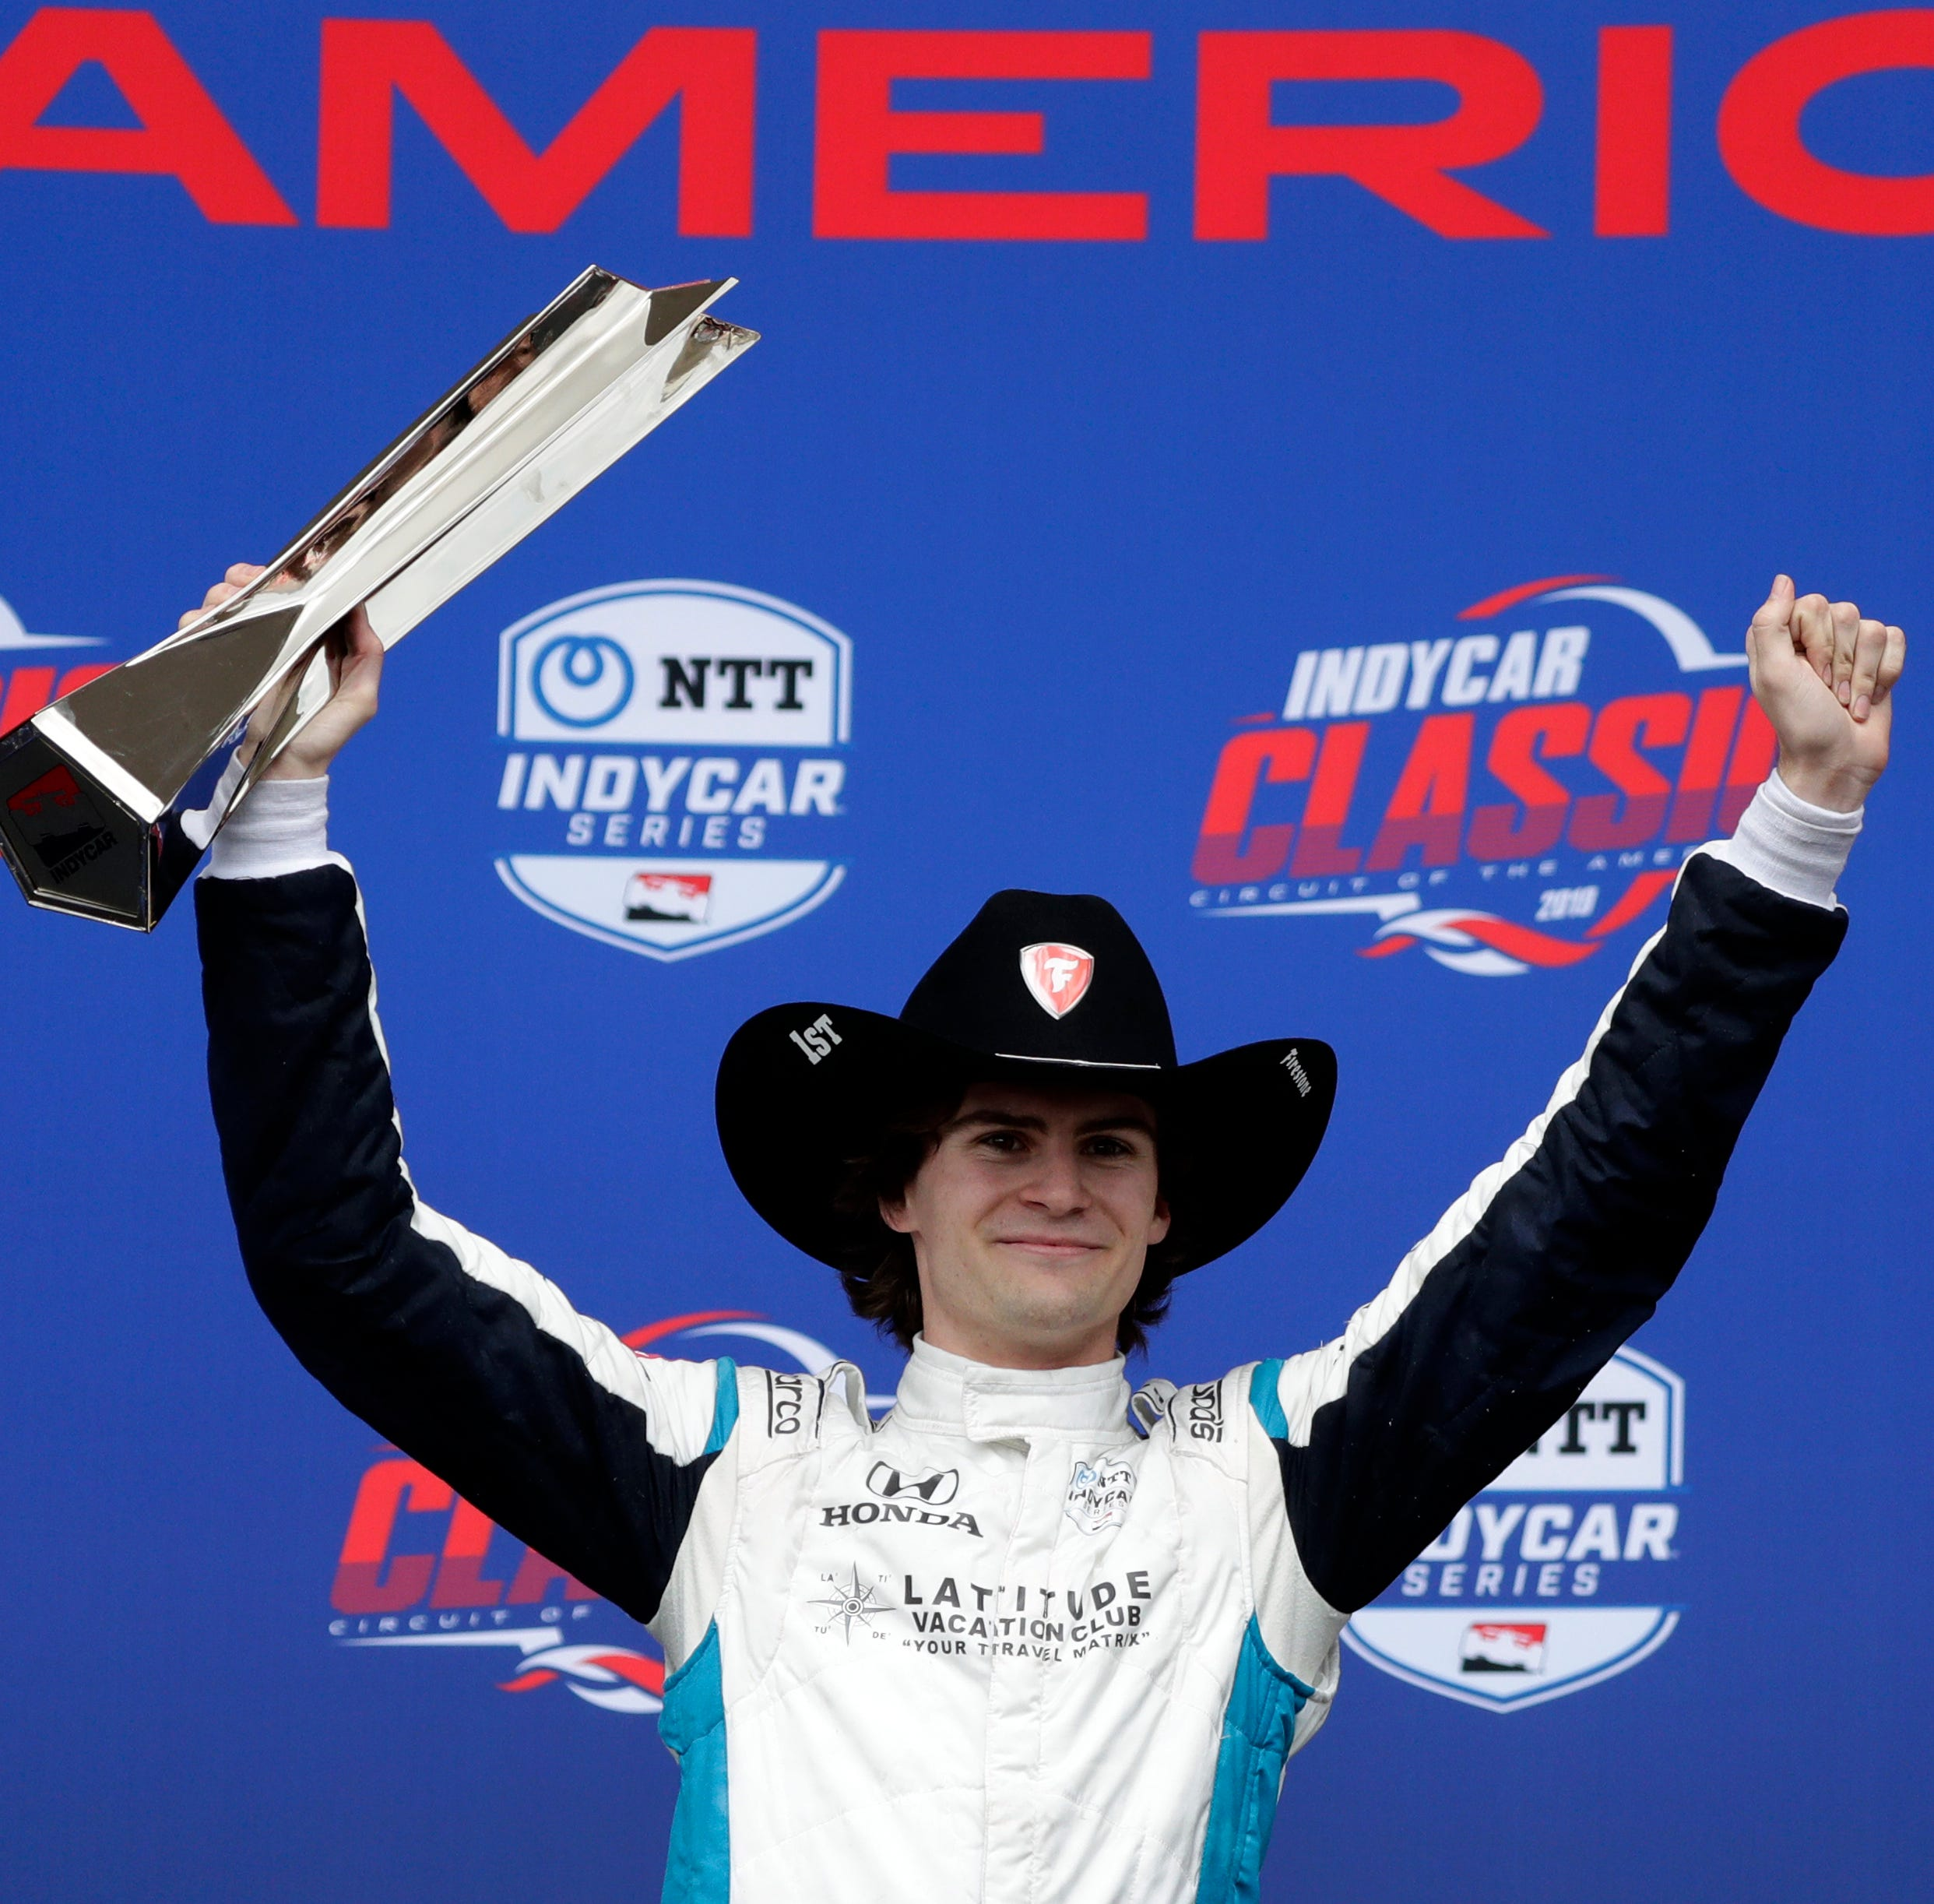 Insider: Herta, Steinbrenner, a couple of kids chasing a 'crazy' dream, make IndyCar history